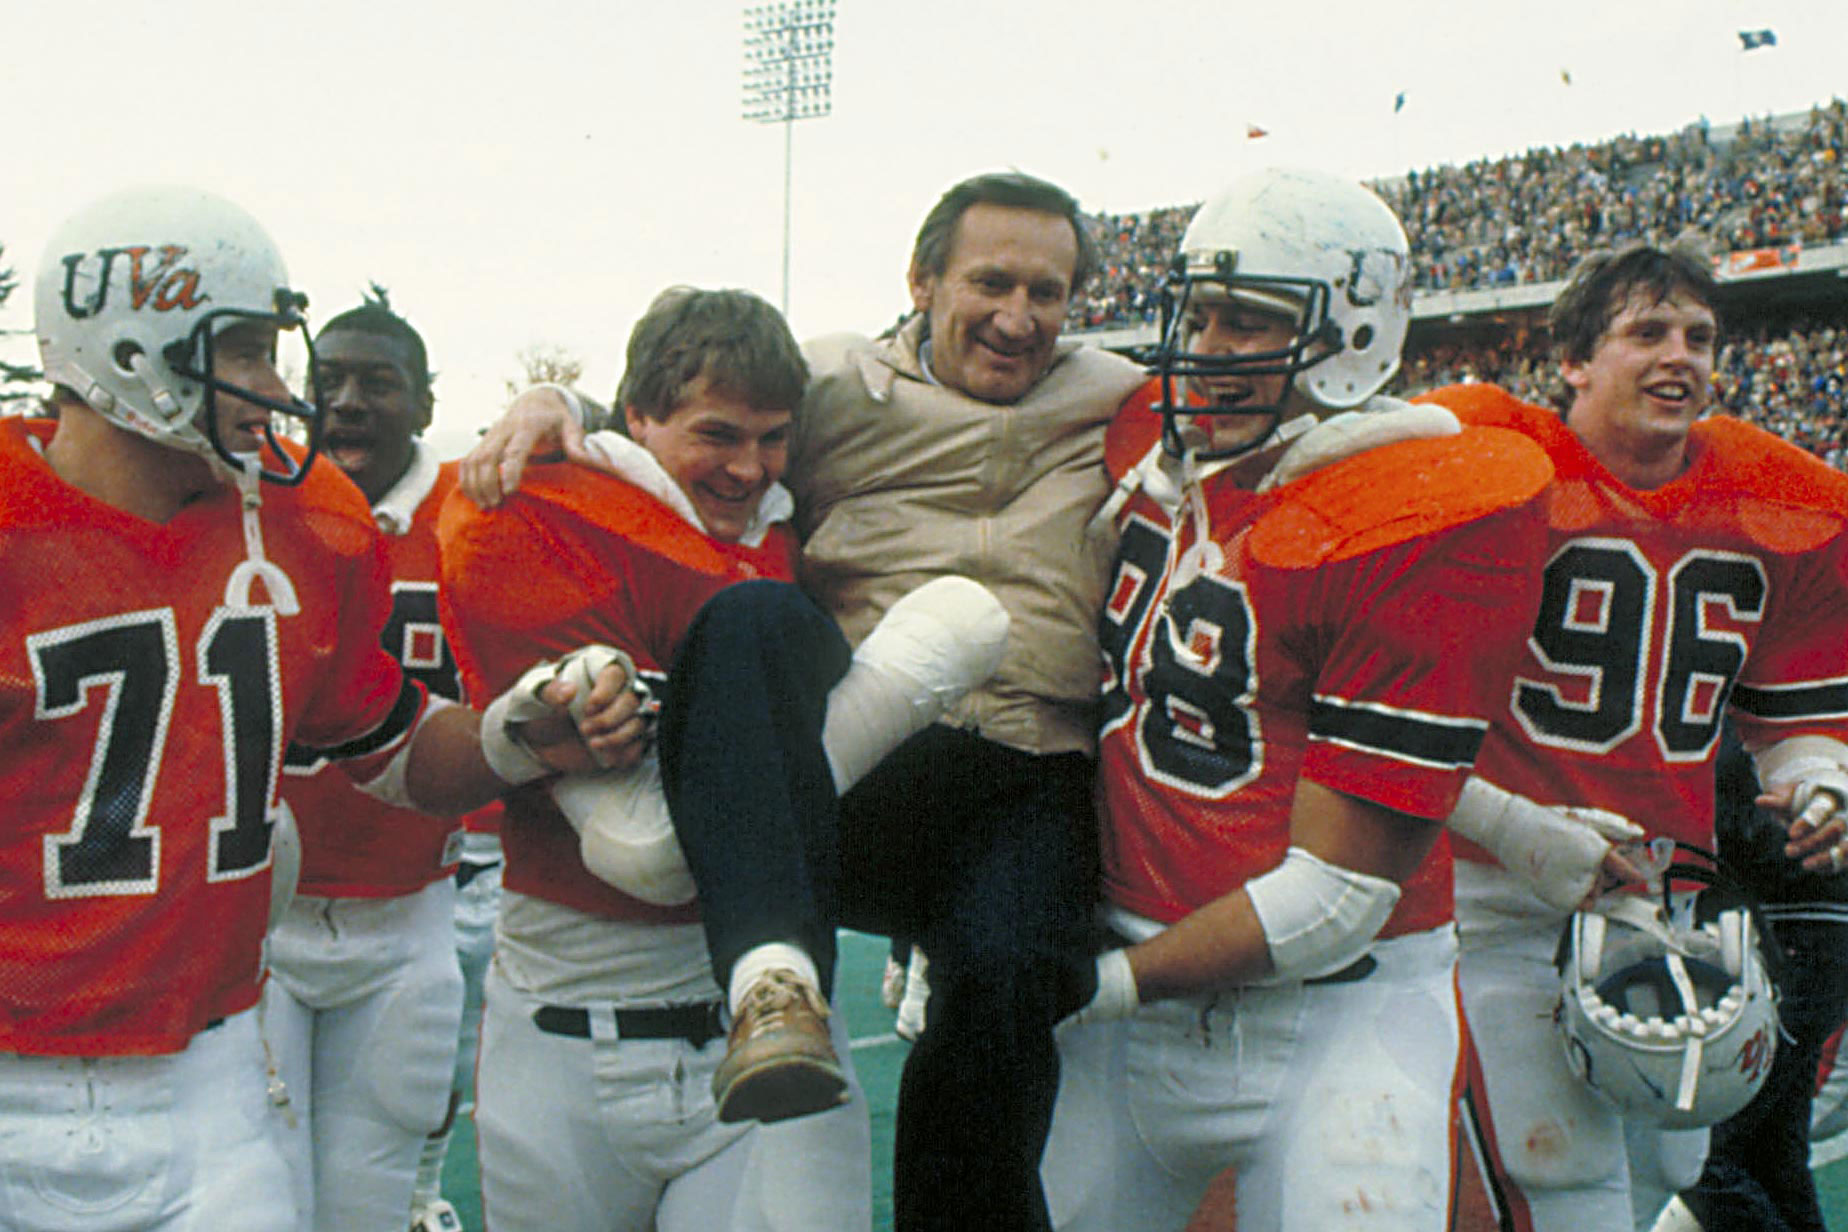 In the 29 years before George Welsh came to Charlottesville, the Cavalier football team had two winning seasons. He took them to 12 bowl games in 19 years and is enshrined in the College Football Hall of Fame.